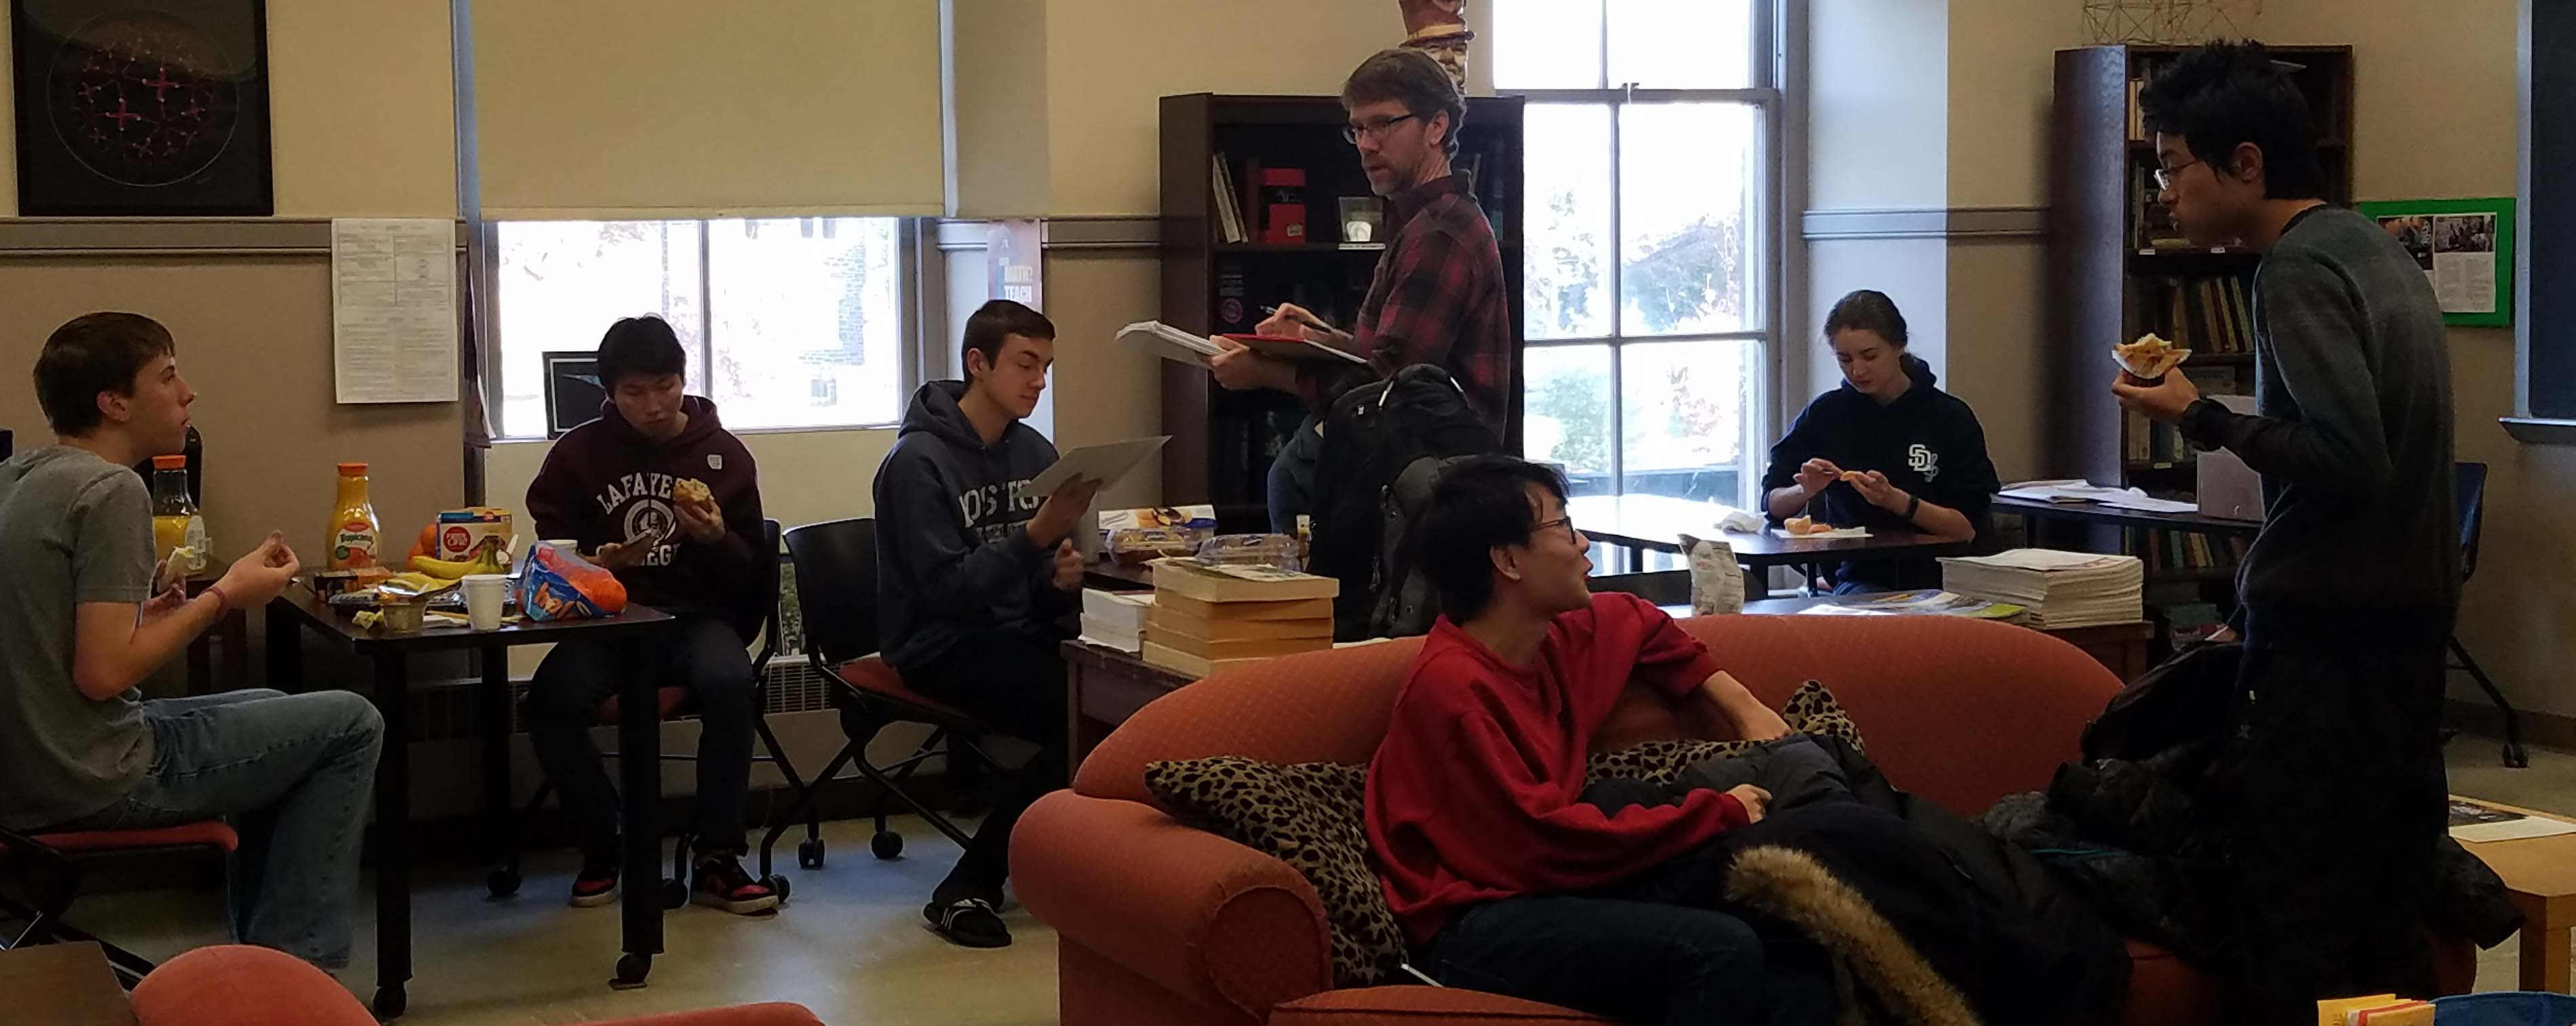 Professor Derek Smith and students discuss math problems from the Putnam Exam.